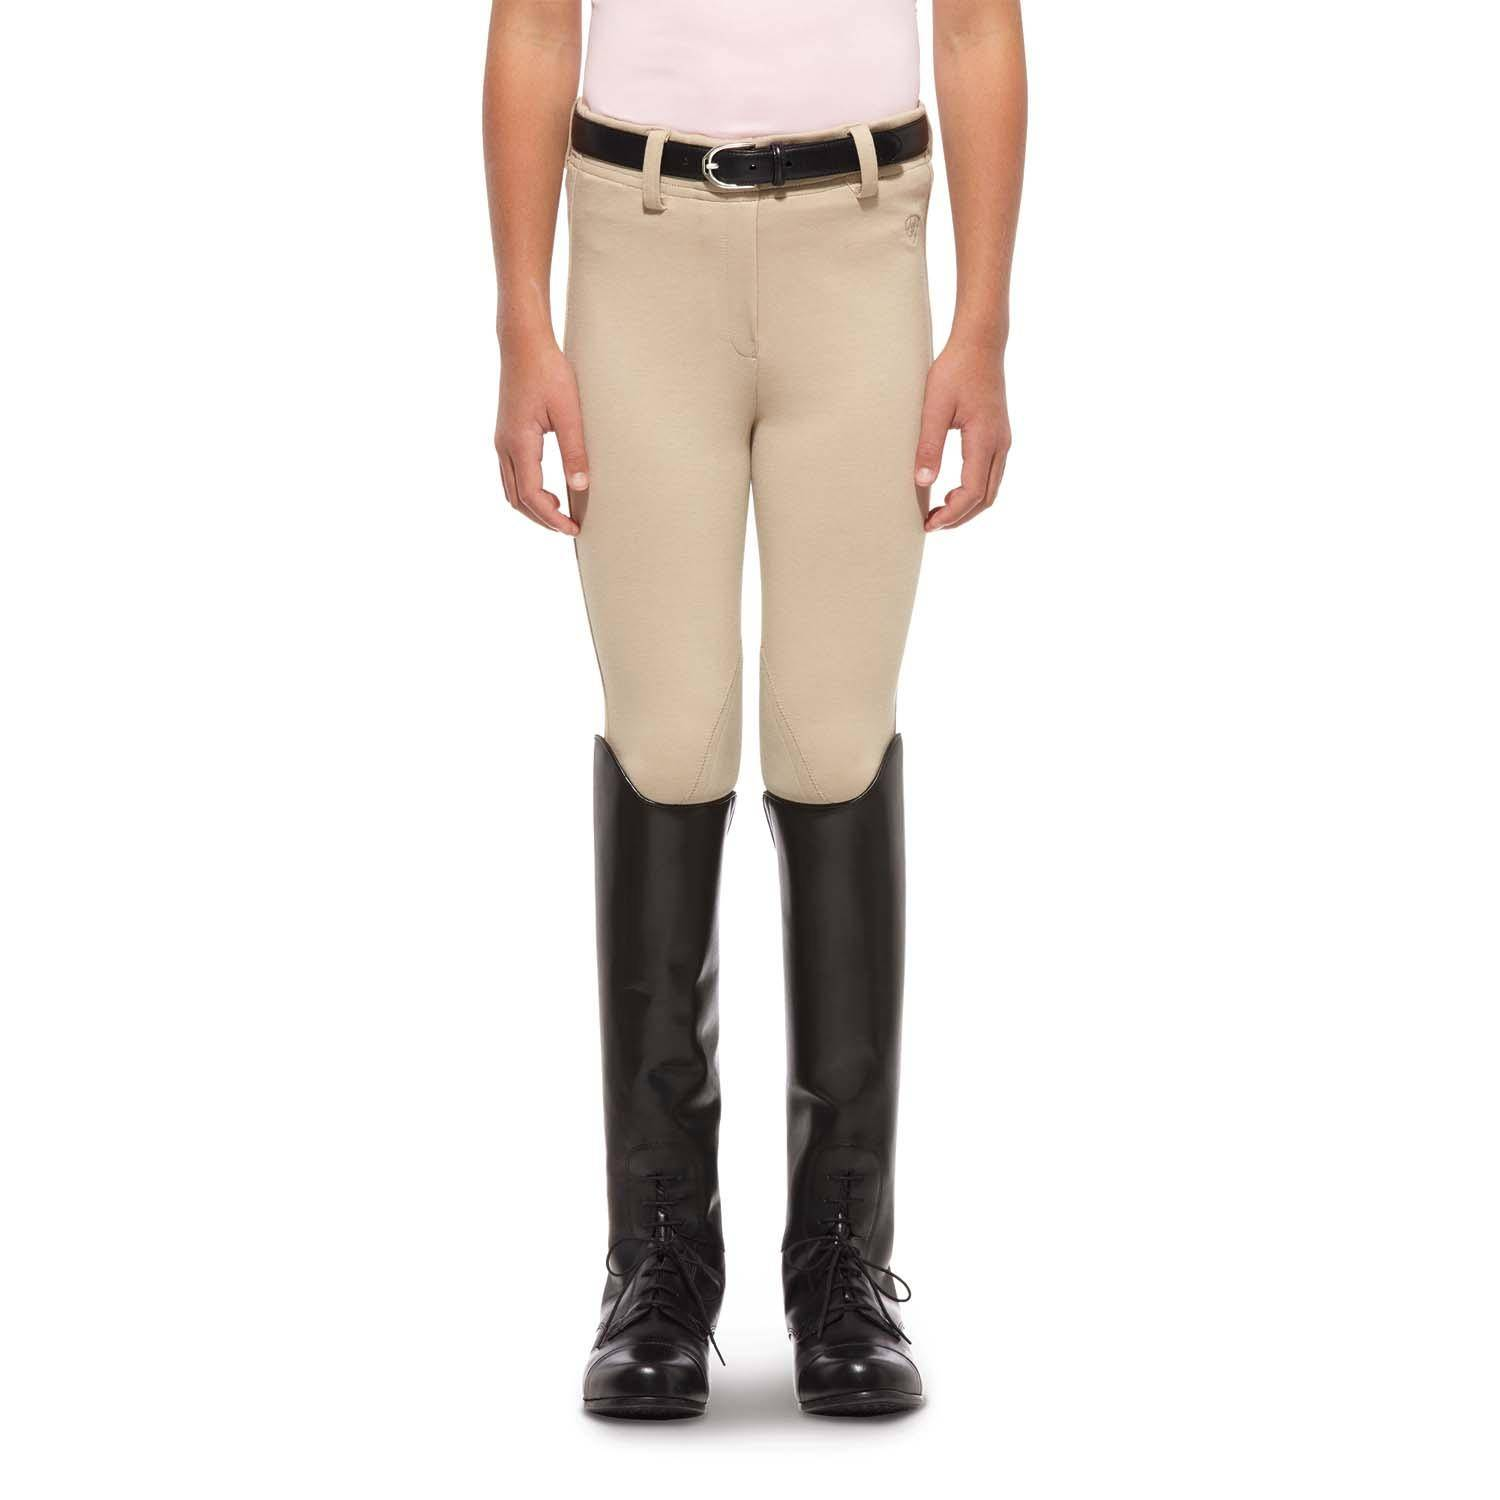 Ariat Heritage Knit Pull On Breeches - Kids, Tan